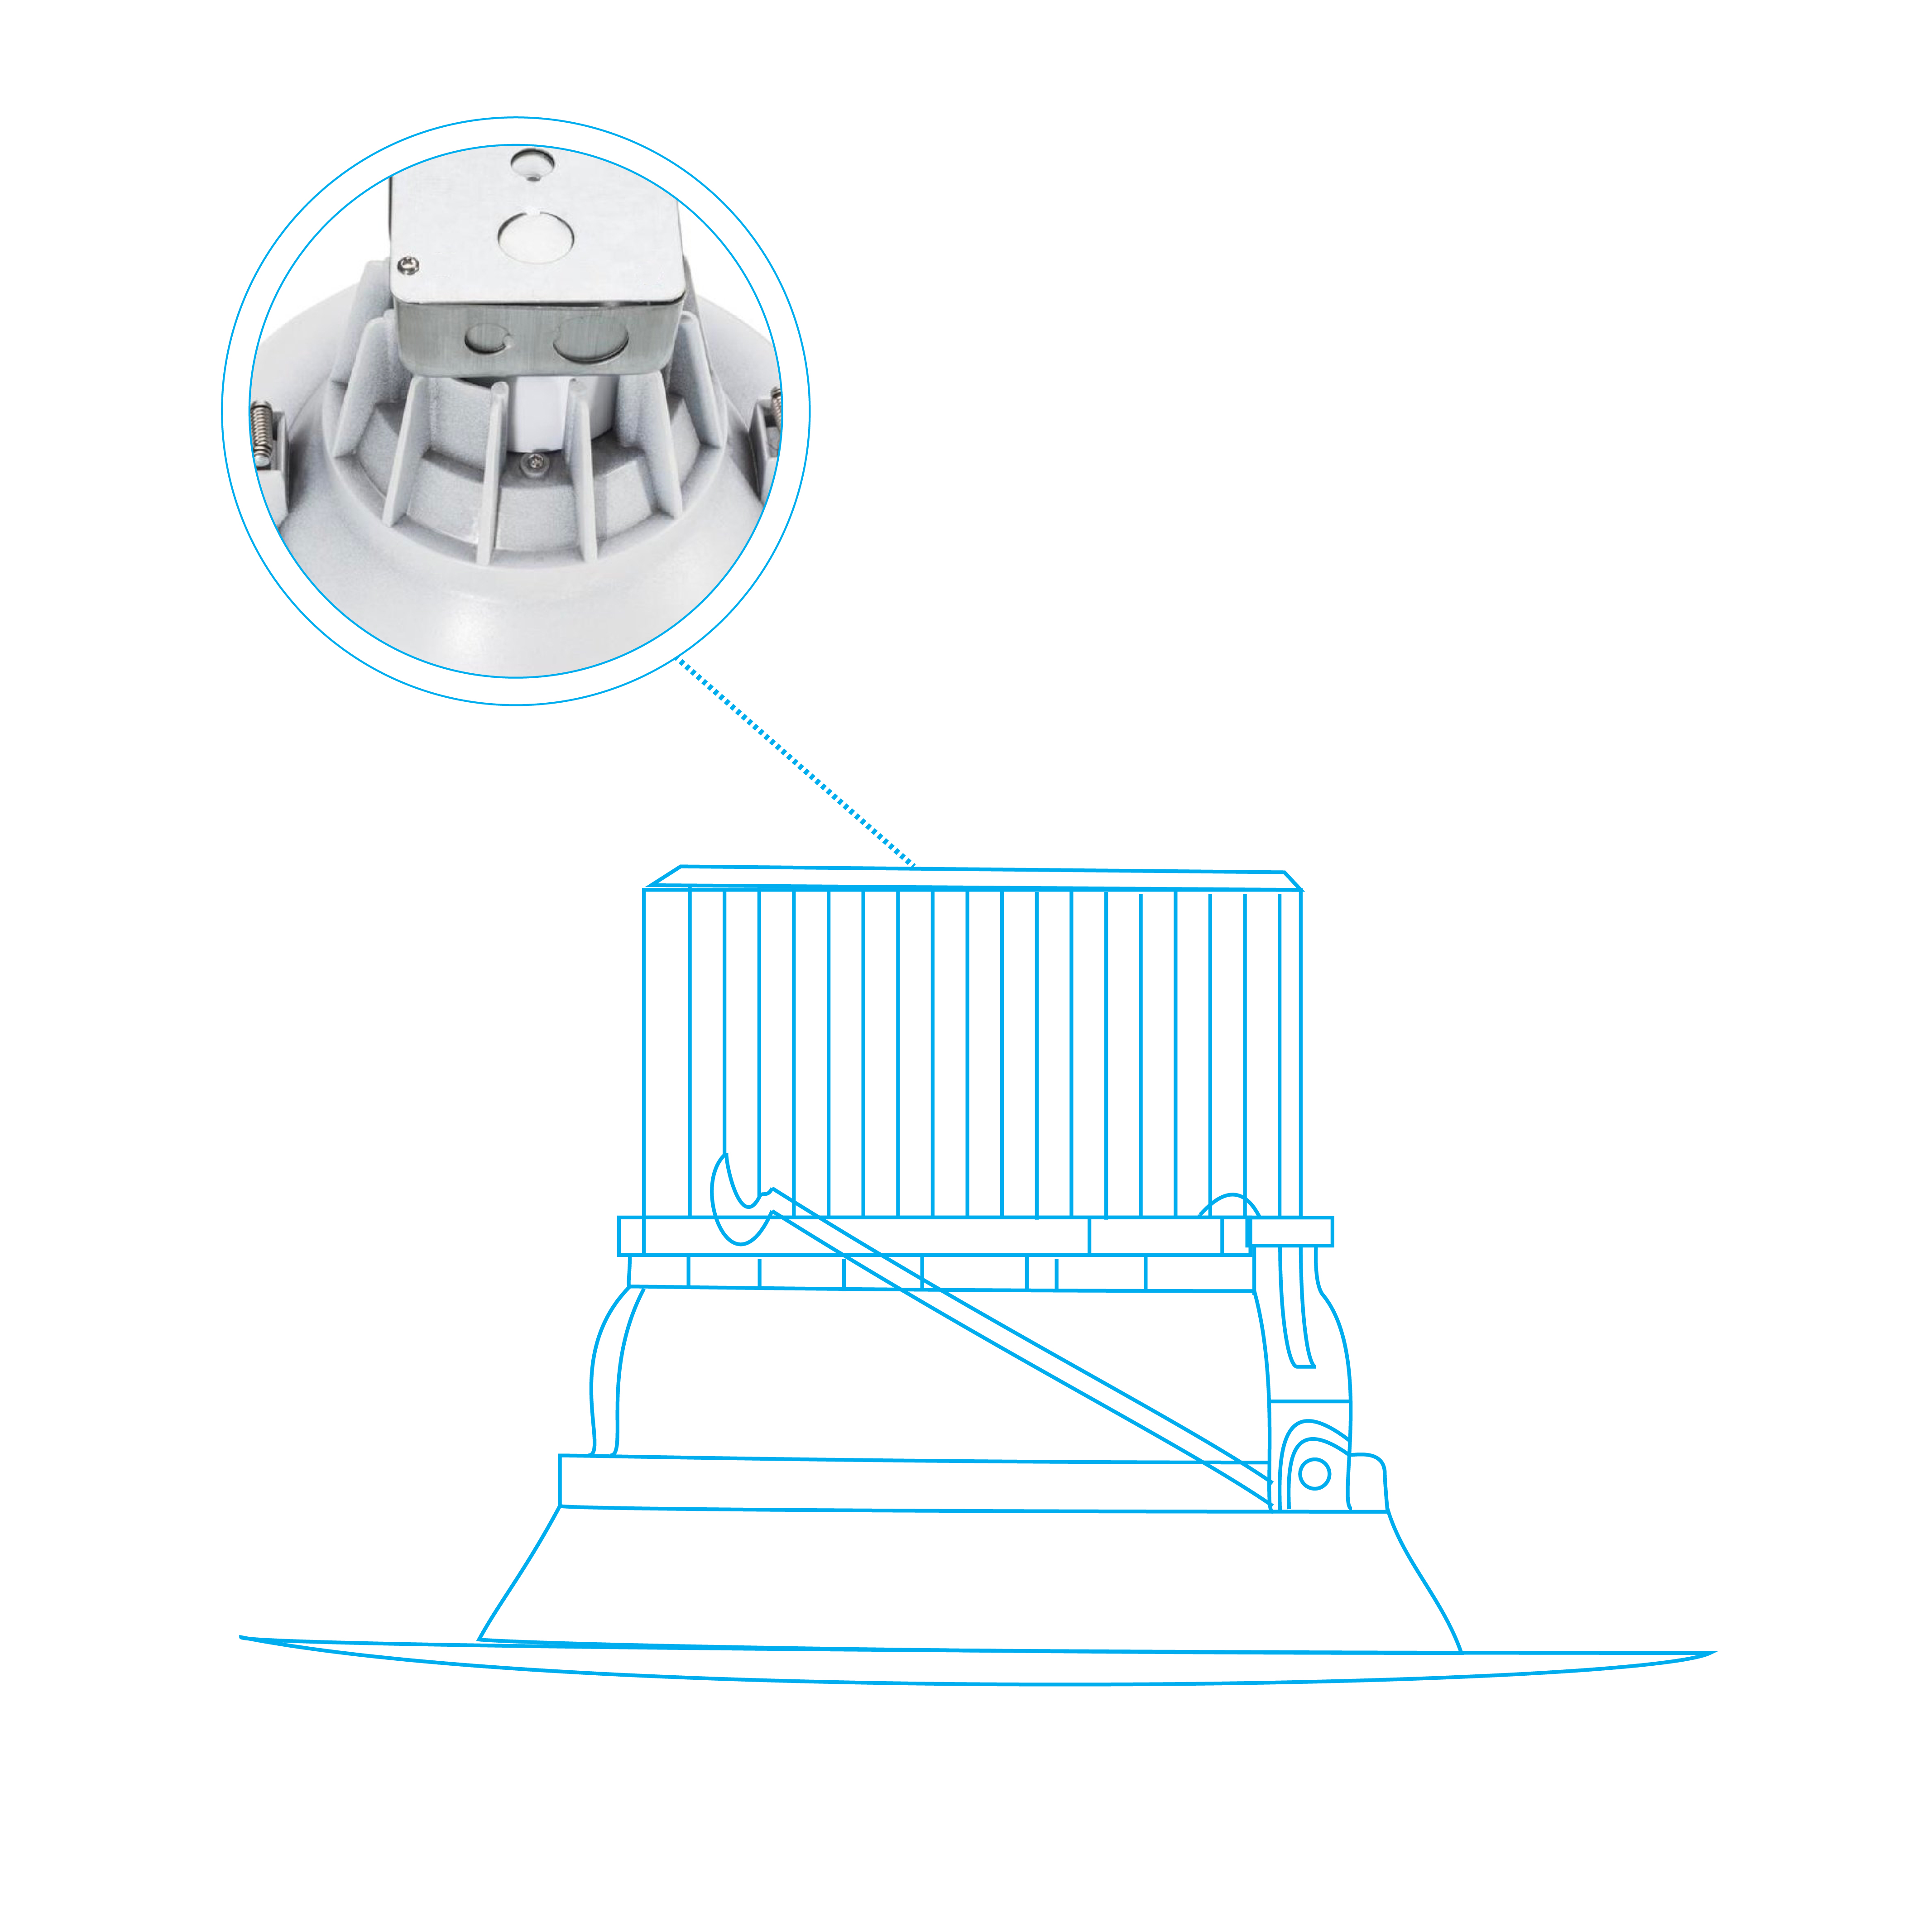 8 Inch Led Dimmable Downlight 30w W Junction Box Ledmyplace Wiring Instructions For Downlights The Housing This Is Made Of Rugged Die Cast Aluminium Better Durability